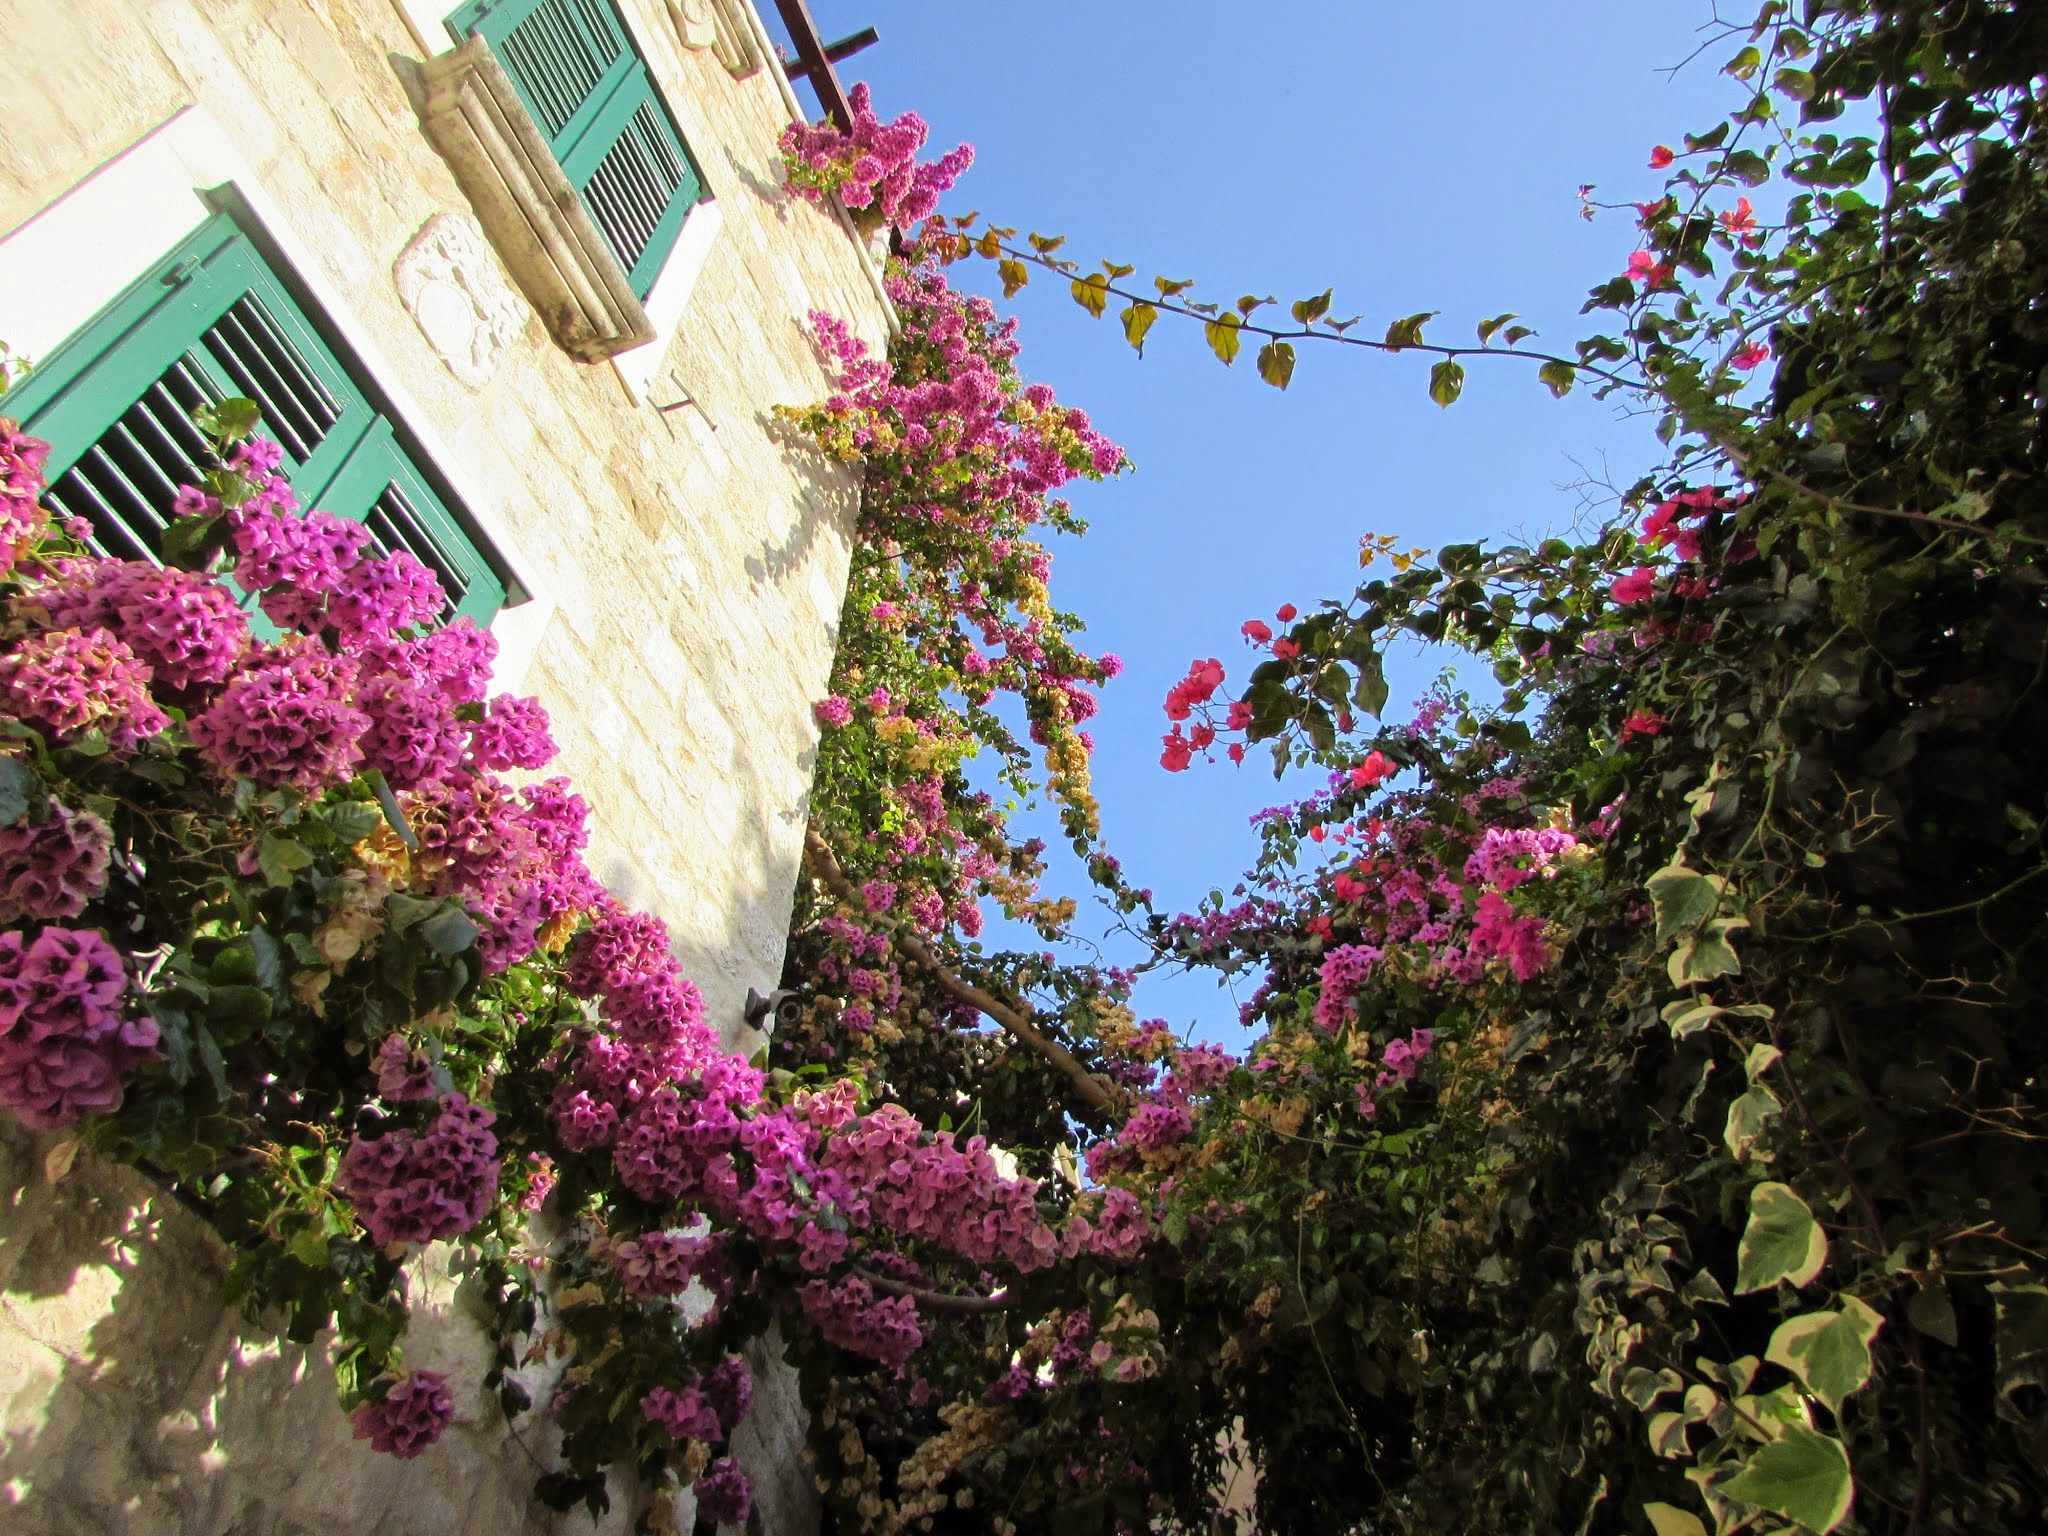 Every little nook and back alley seemed to be full of bougainvillea.